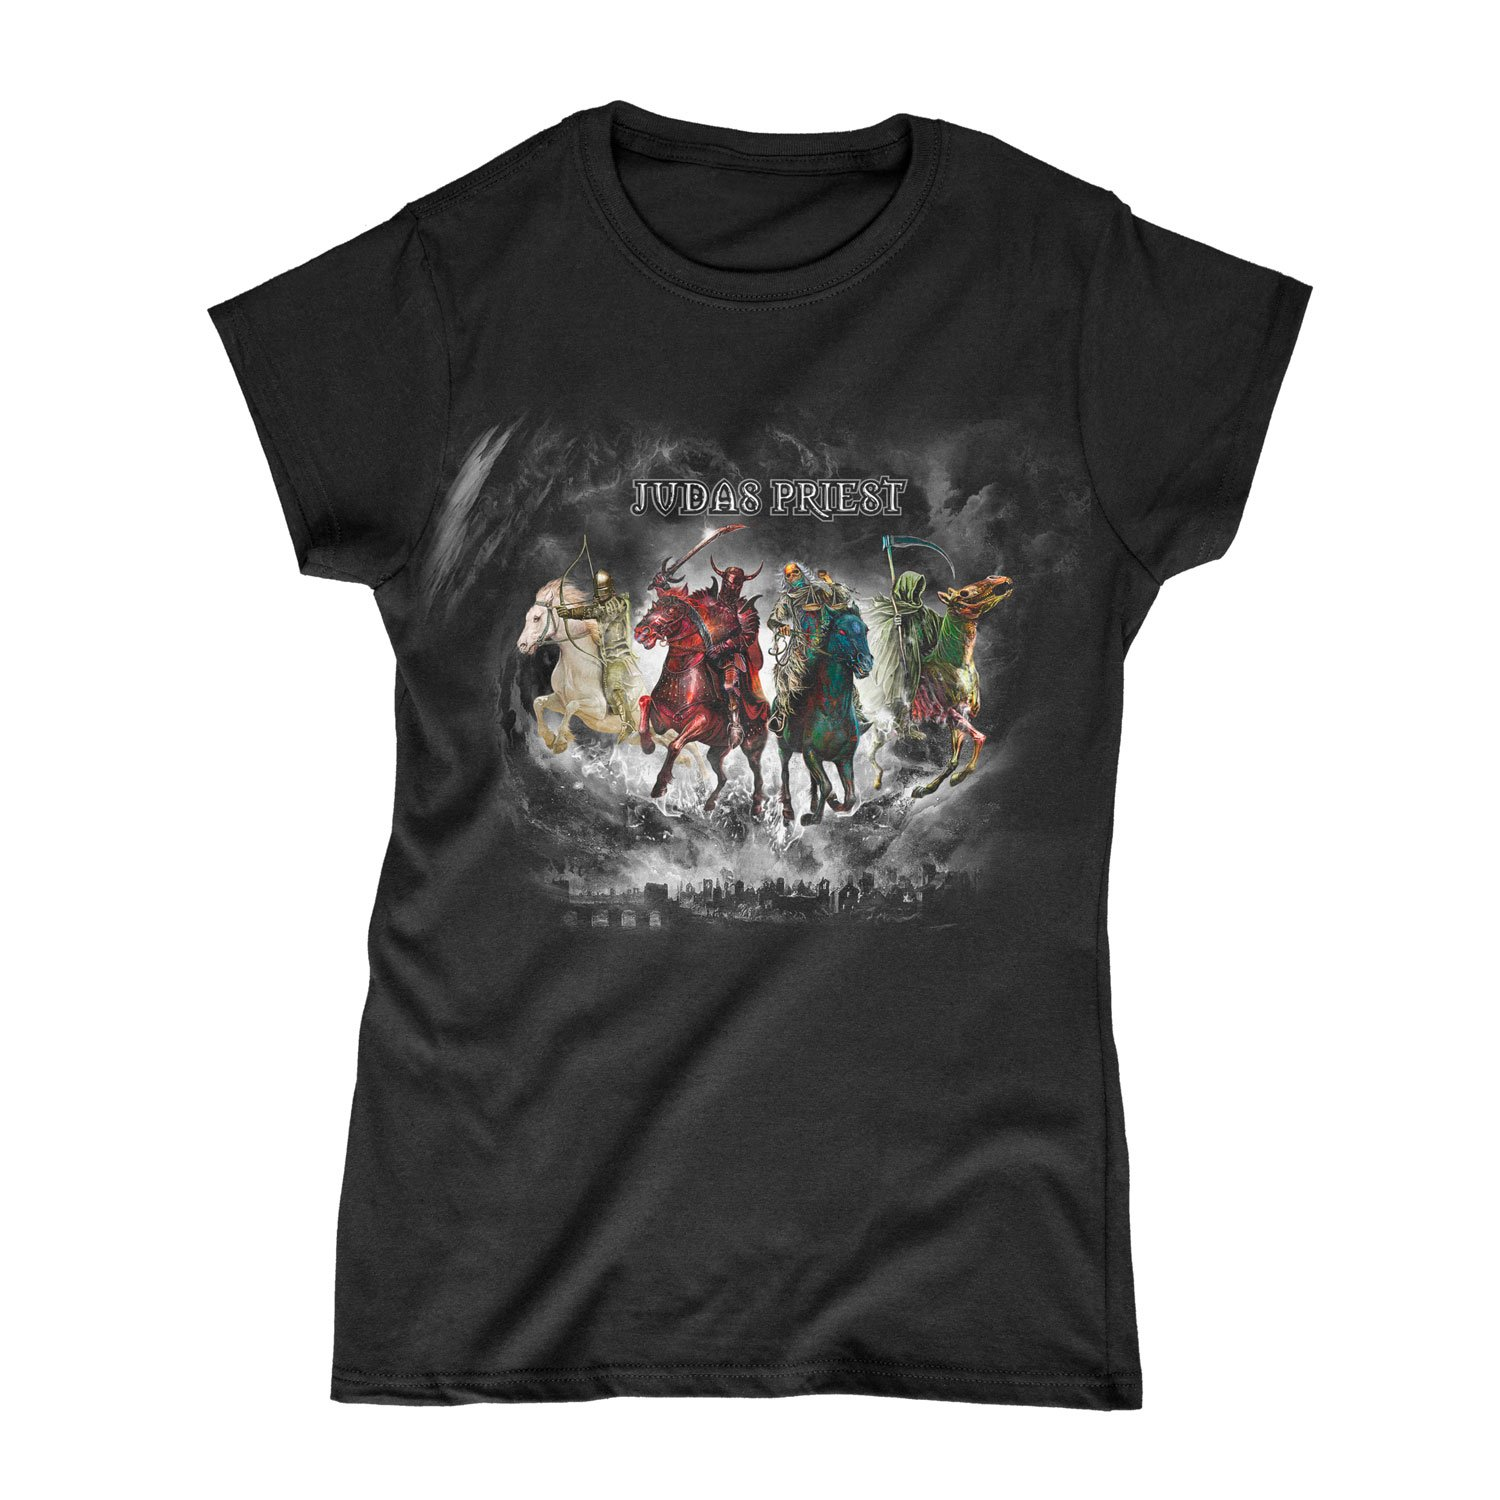 Judas Priest - Four Horsemen Womens T-Shirt